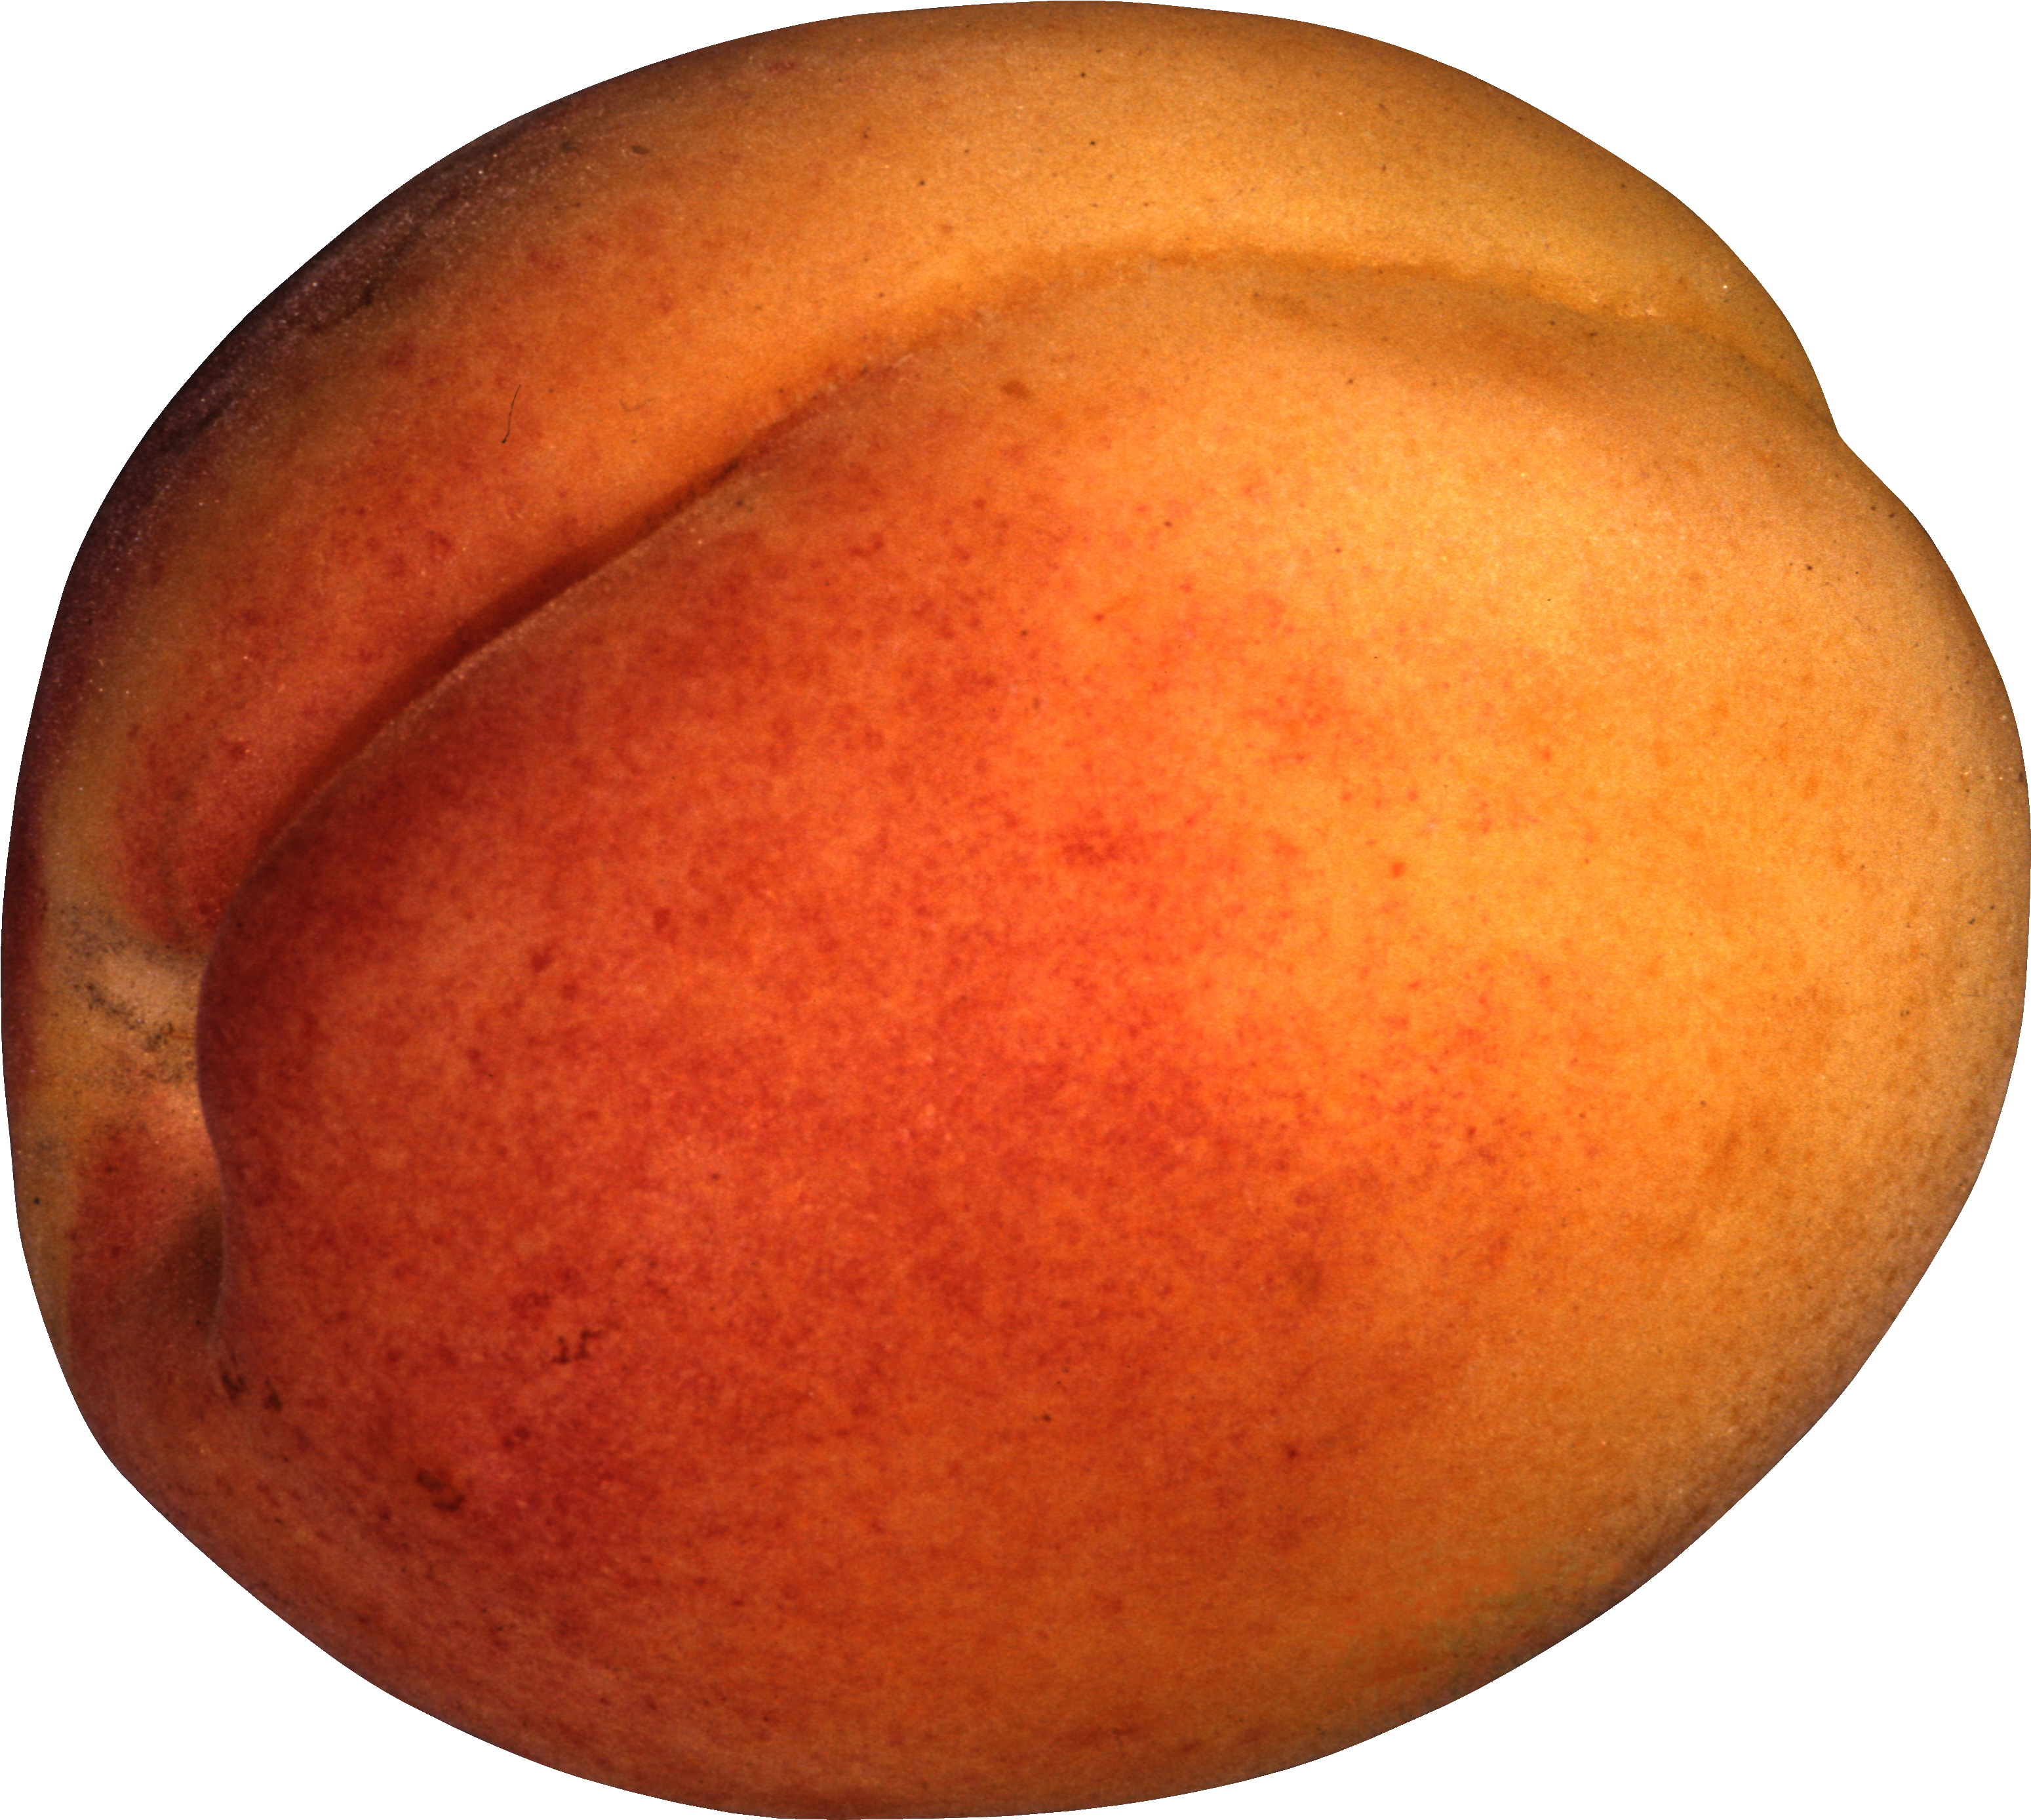 Clipart fruit peach. Png image purepng free